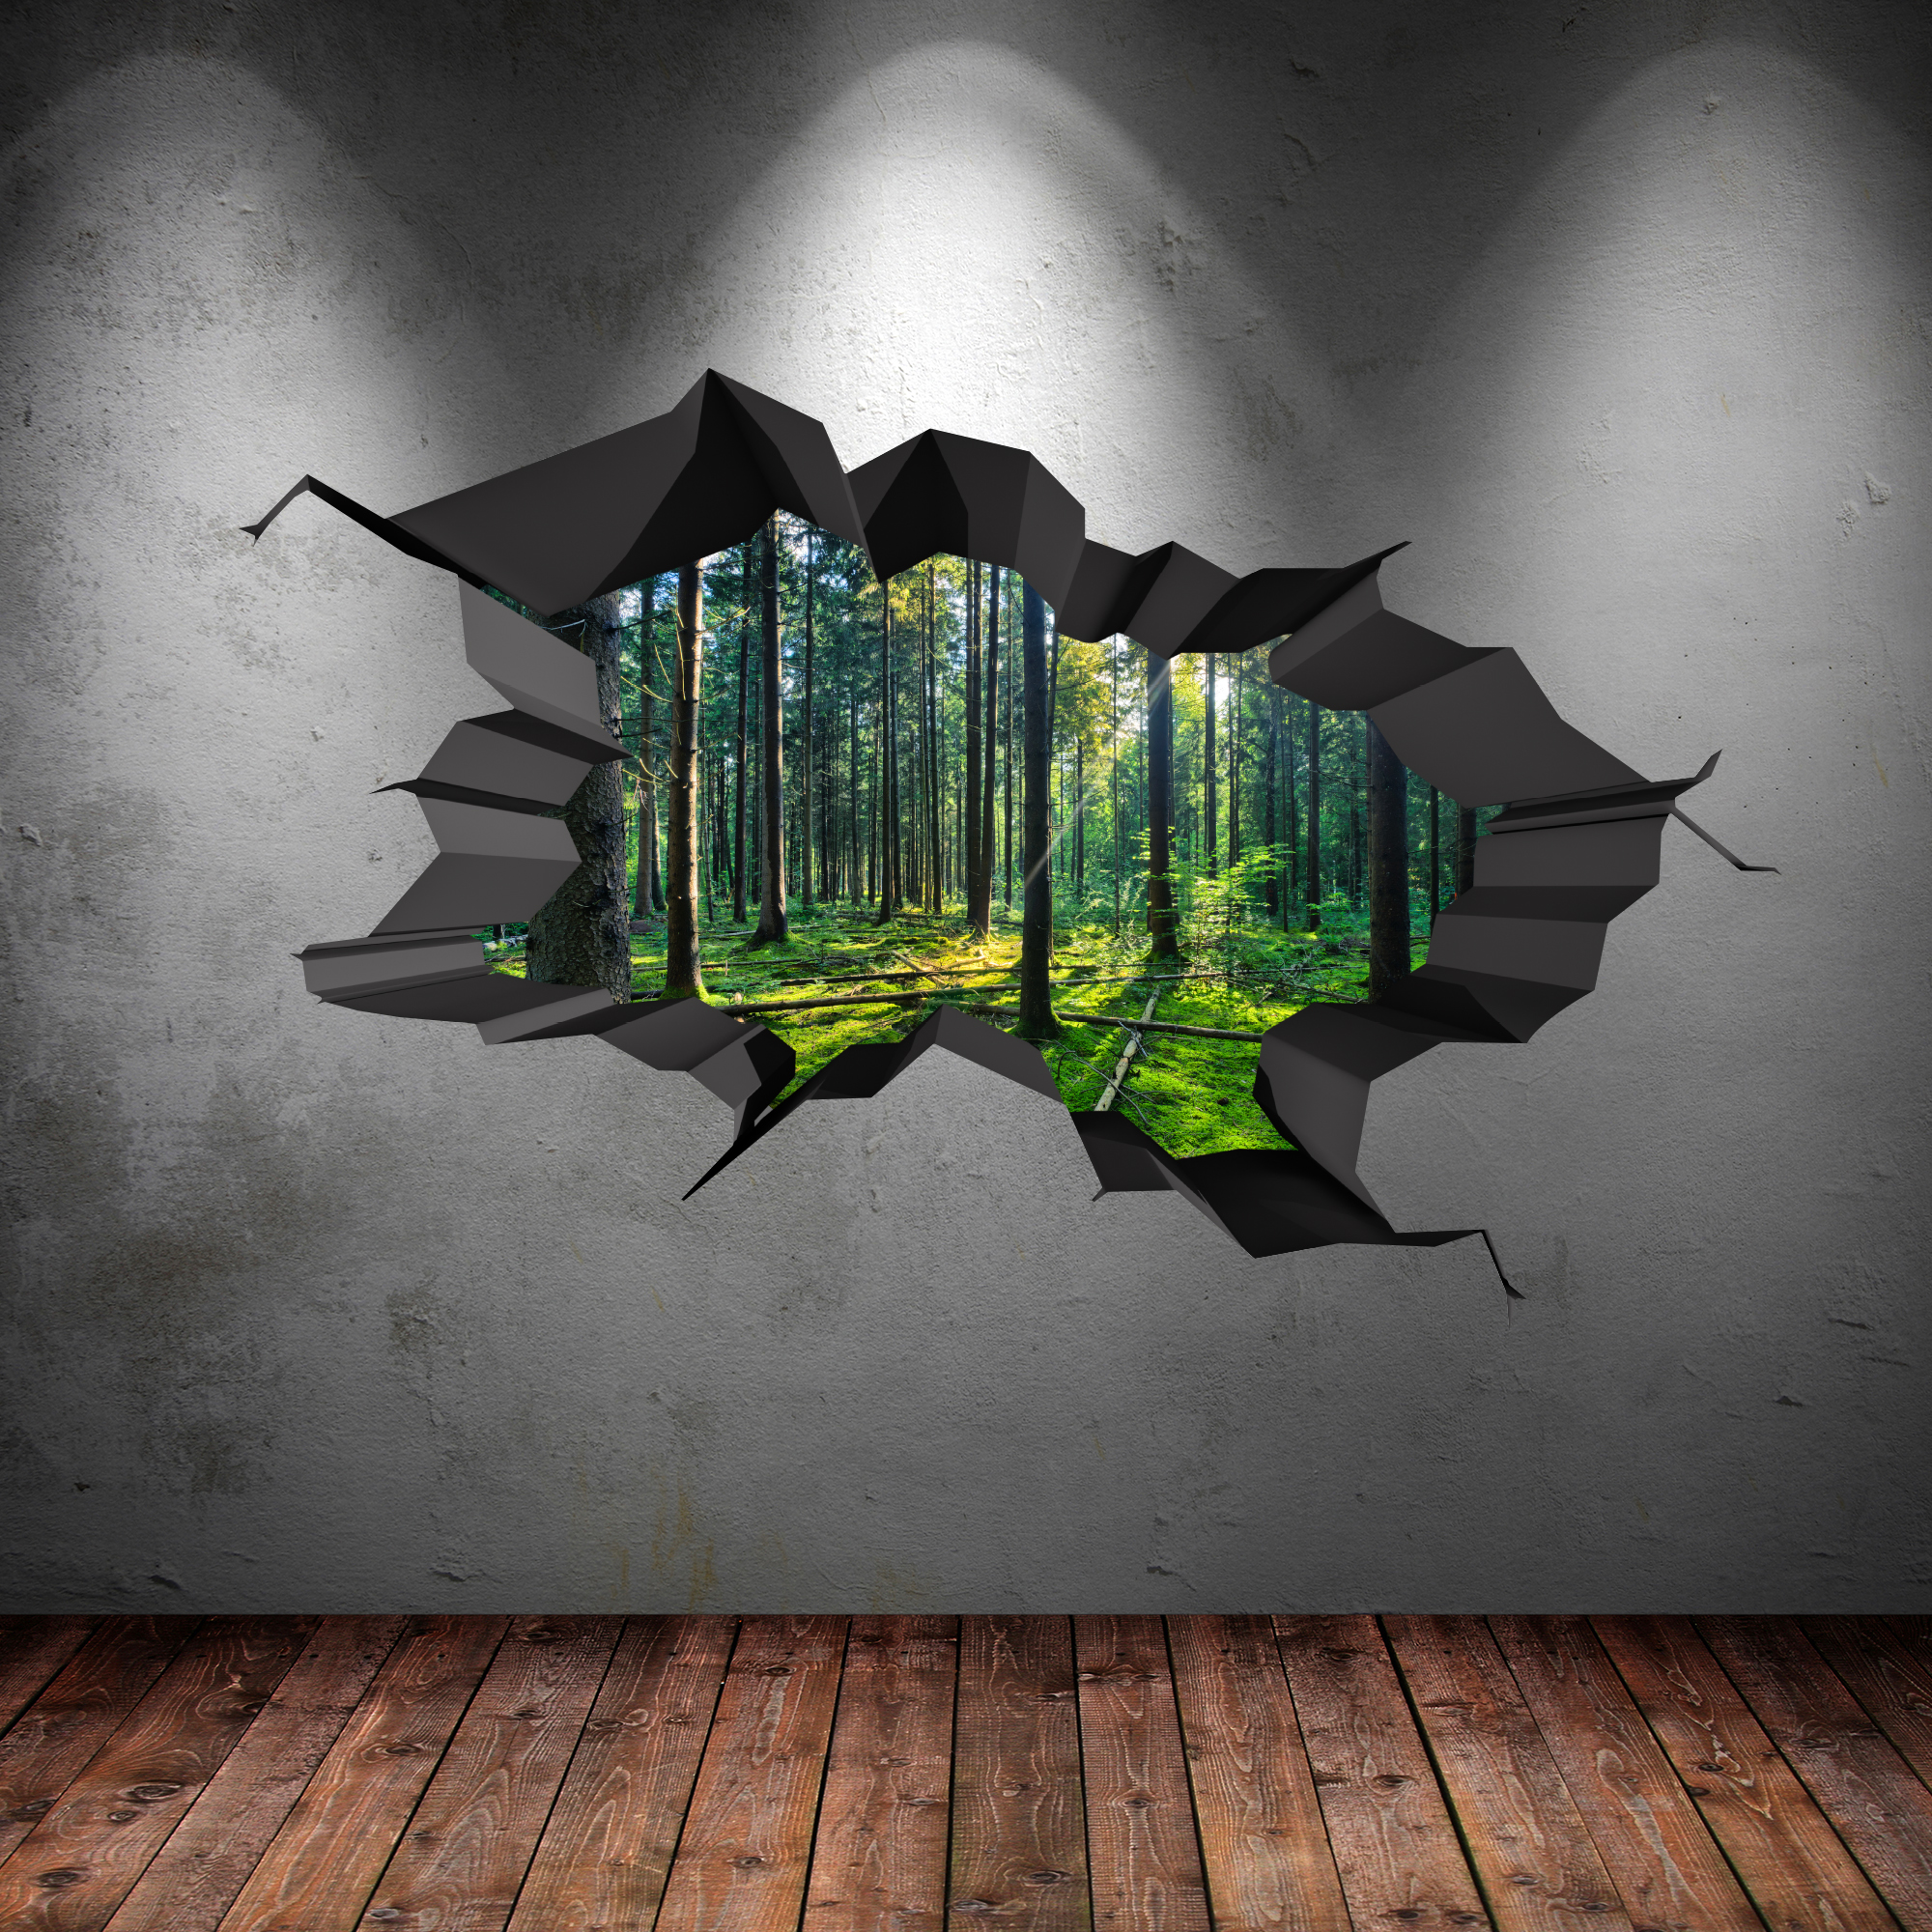 Delicieux Image Is Loading FULL COLOUR WOODS FOREST TREES JUNGLE CRACKED 3D